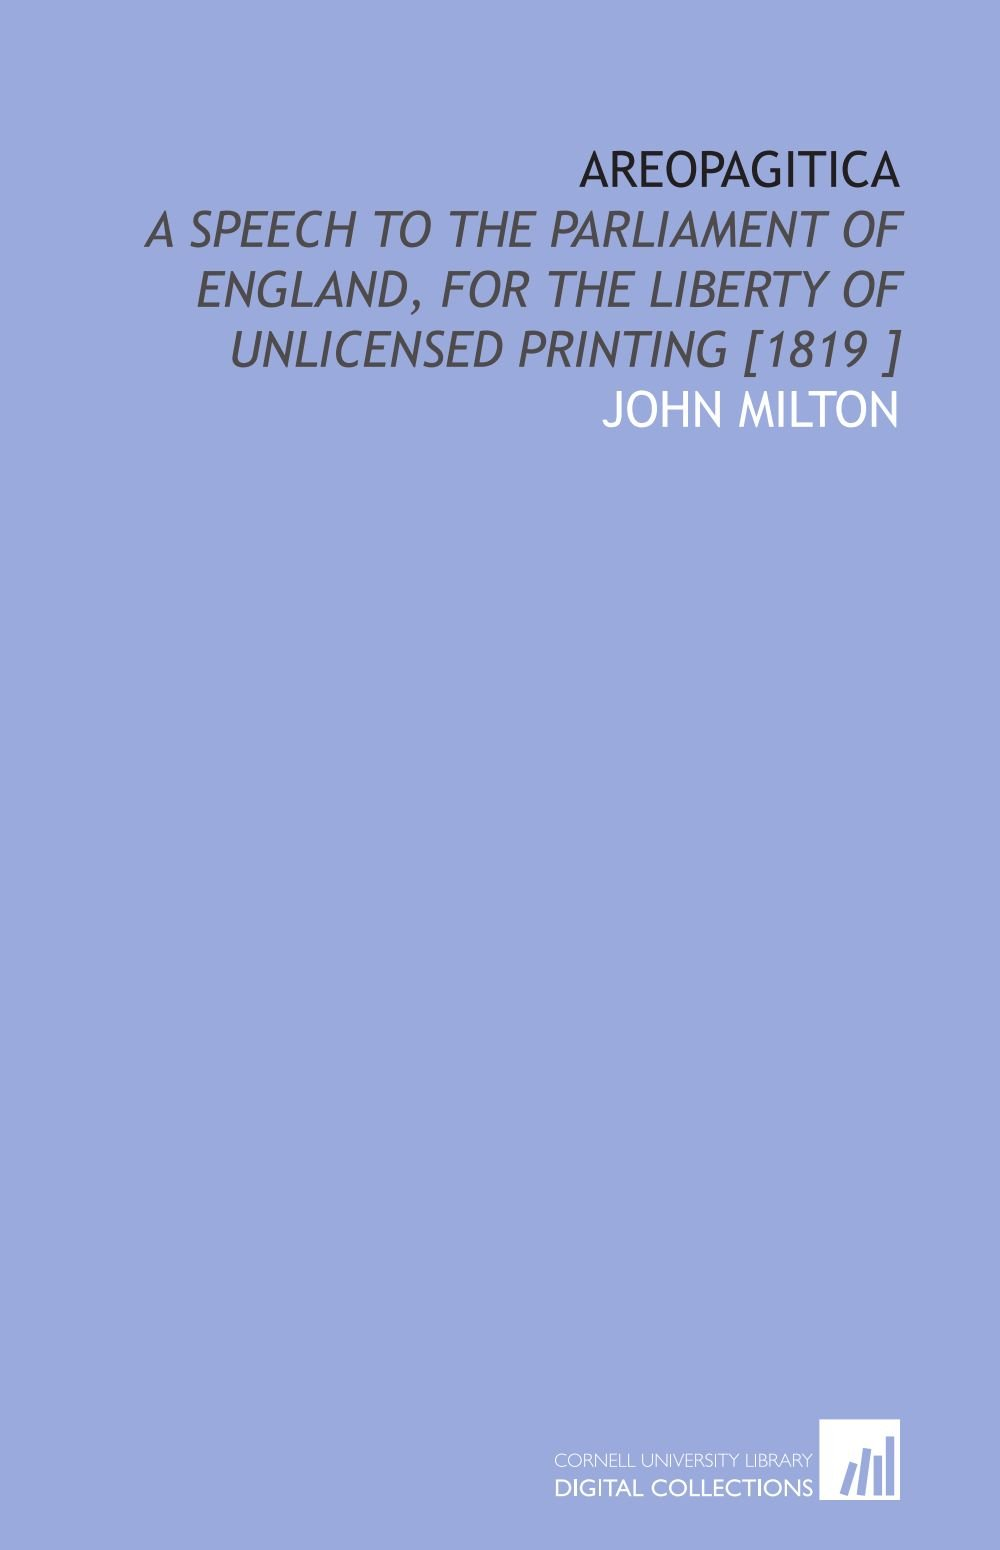 Download Areopagitica: A Speech to the Parliament of England, for the Liberty of Unlicensed Printing [1819 ] pdf